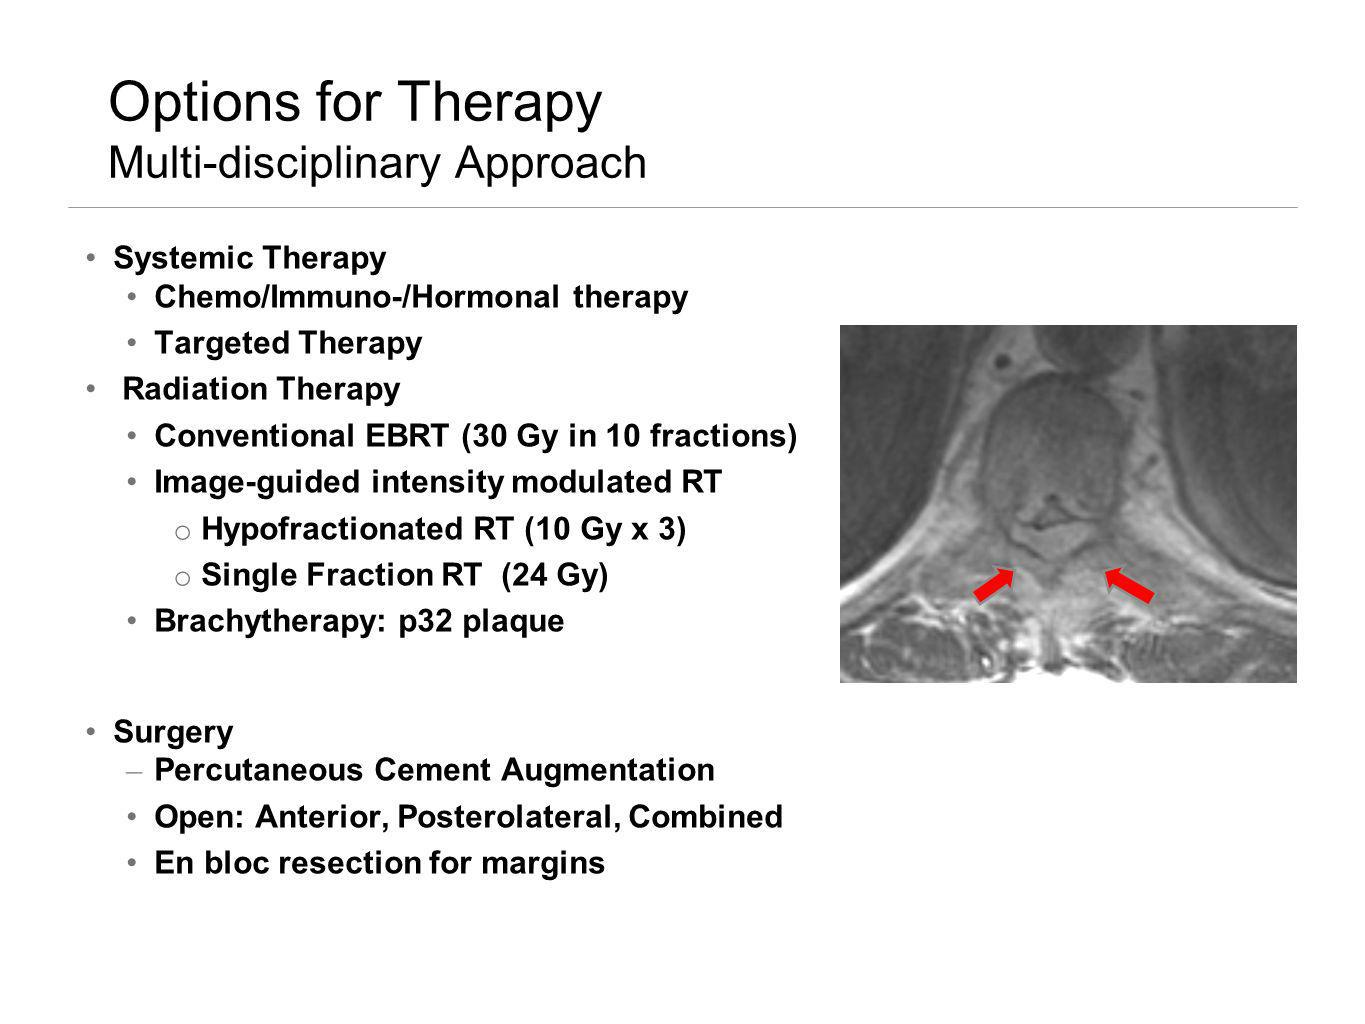 Options for Therapy Multi-disciplinary Approach